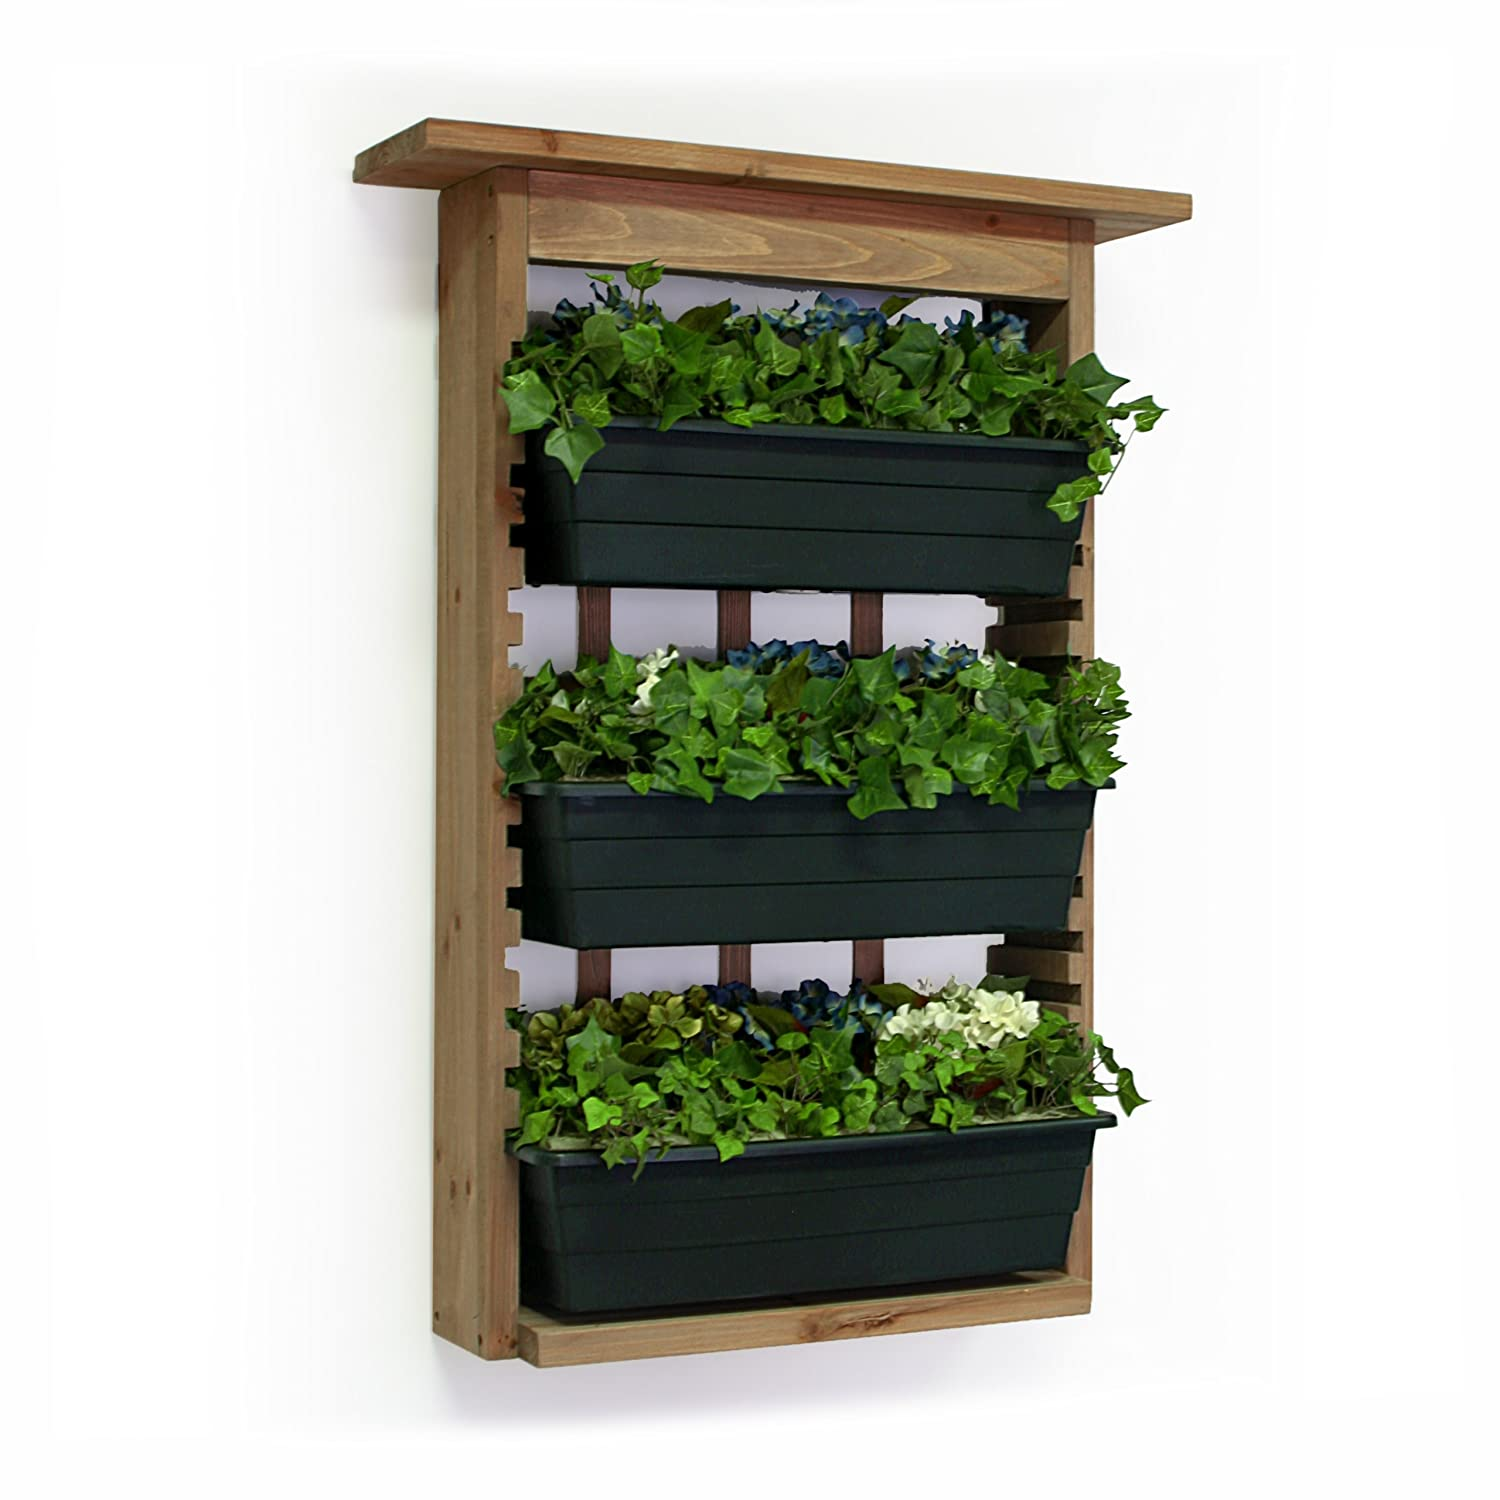 Vertical Indoor Garden Amazon algreen 34002 garden view vertical living wall planter amazon algreen 34002 garden view vertical living wall planter garden outdoor workwithnaturefo